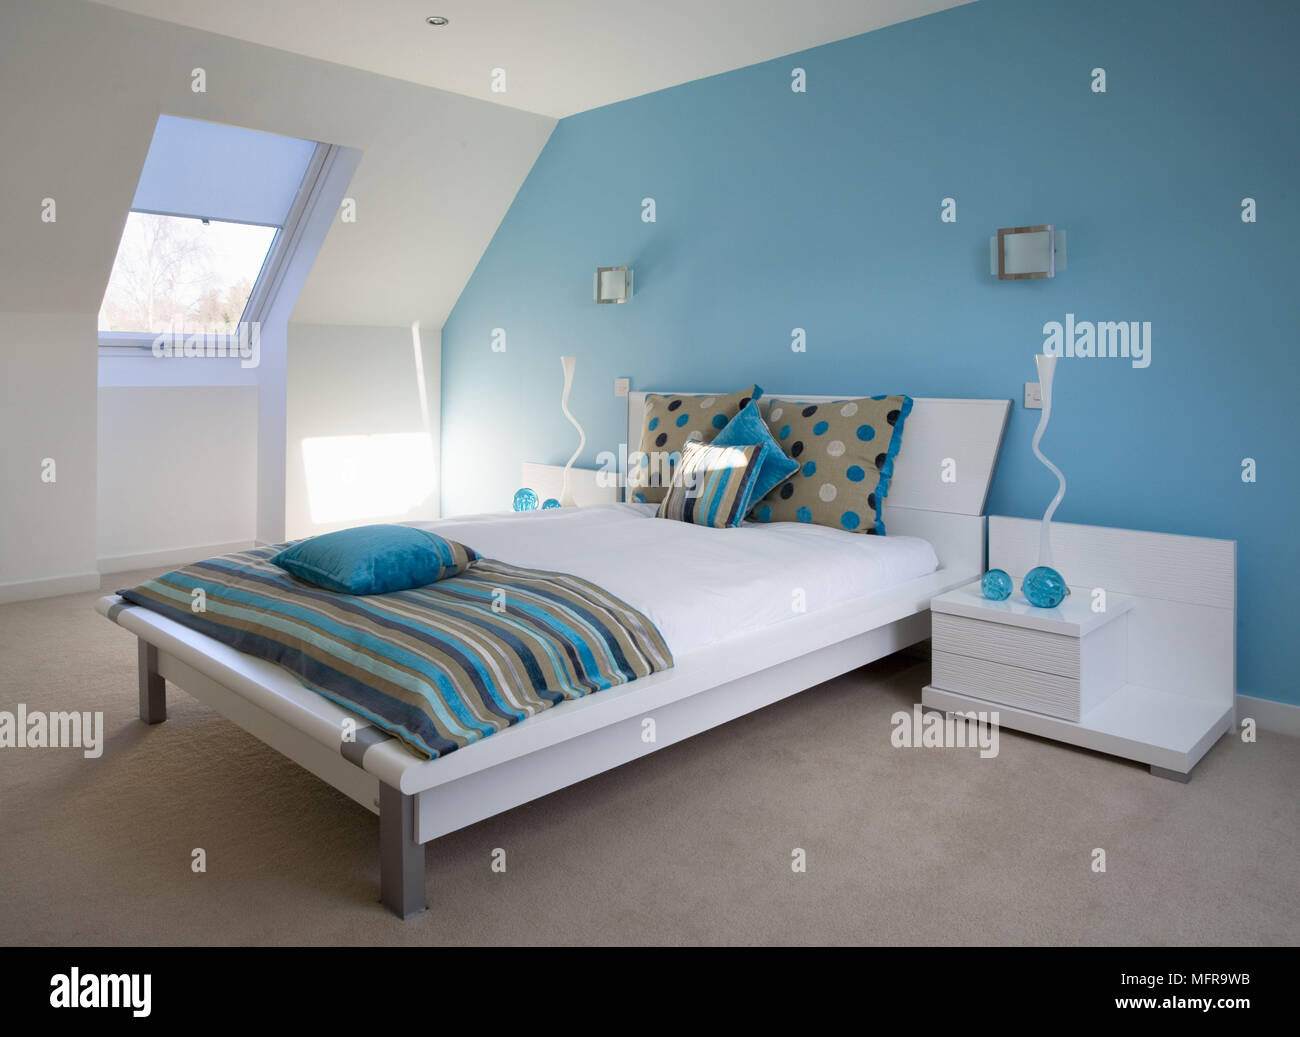 Lamps on beside units either side of double bed in contemporary blue ...